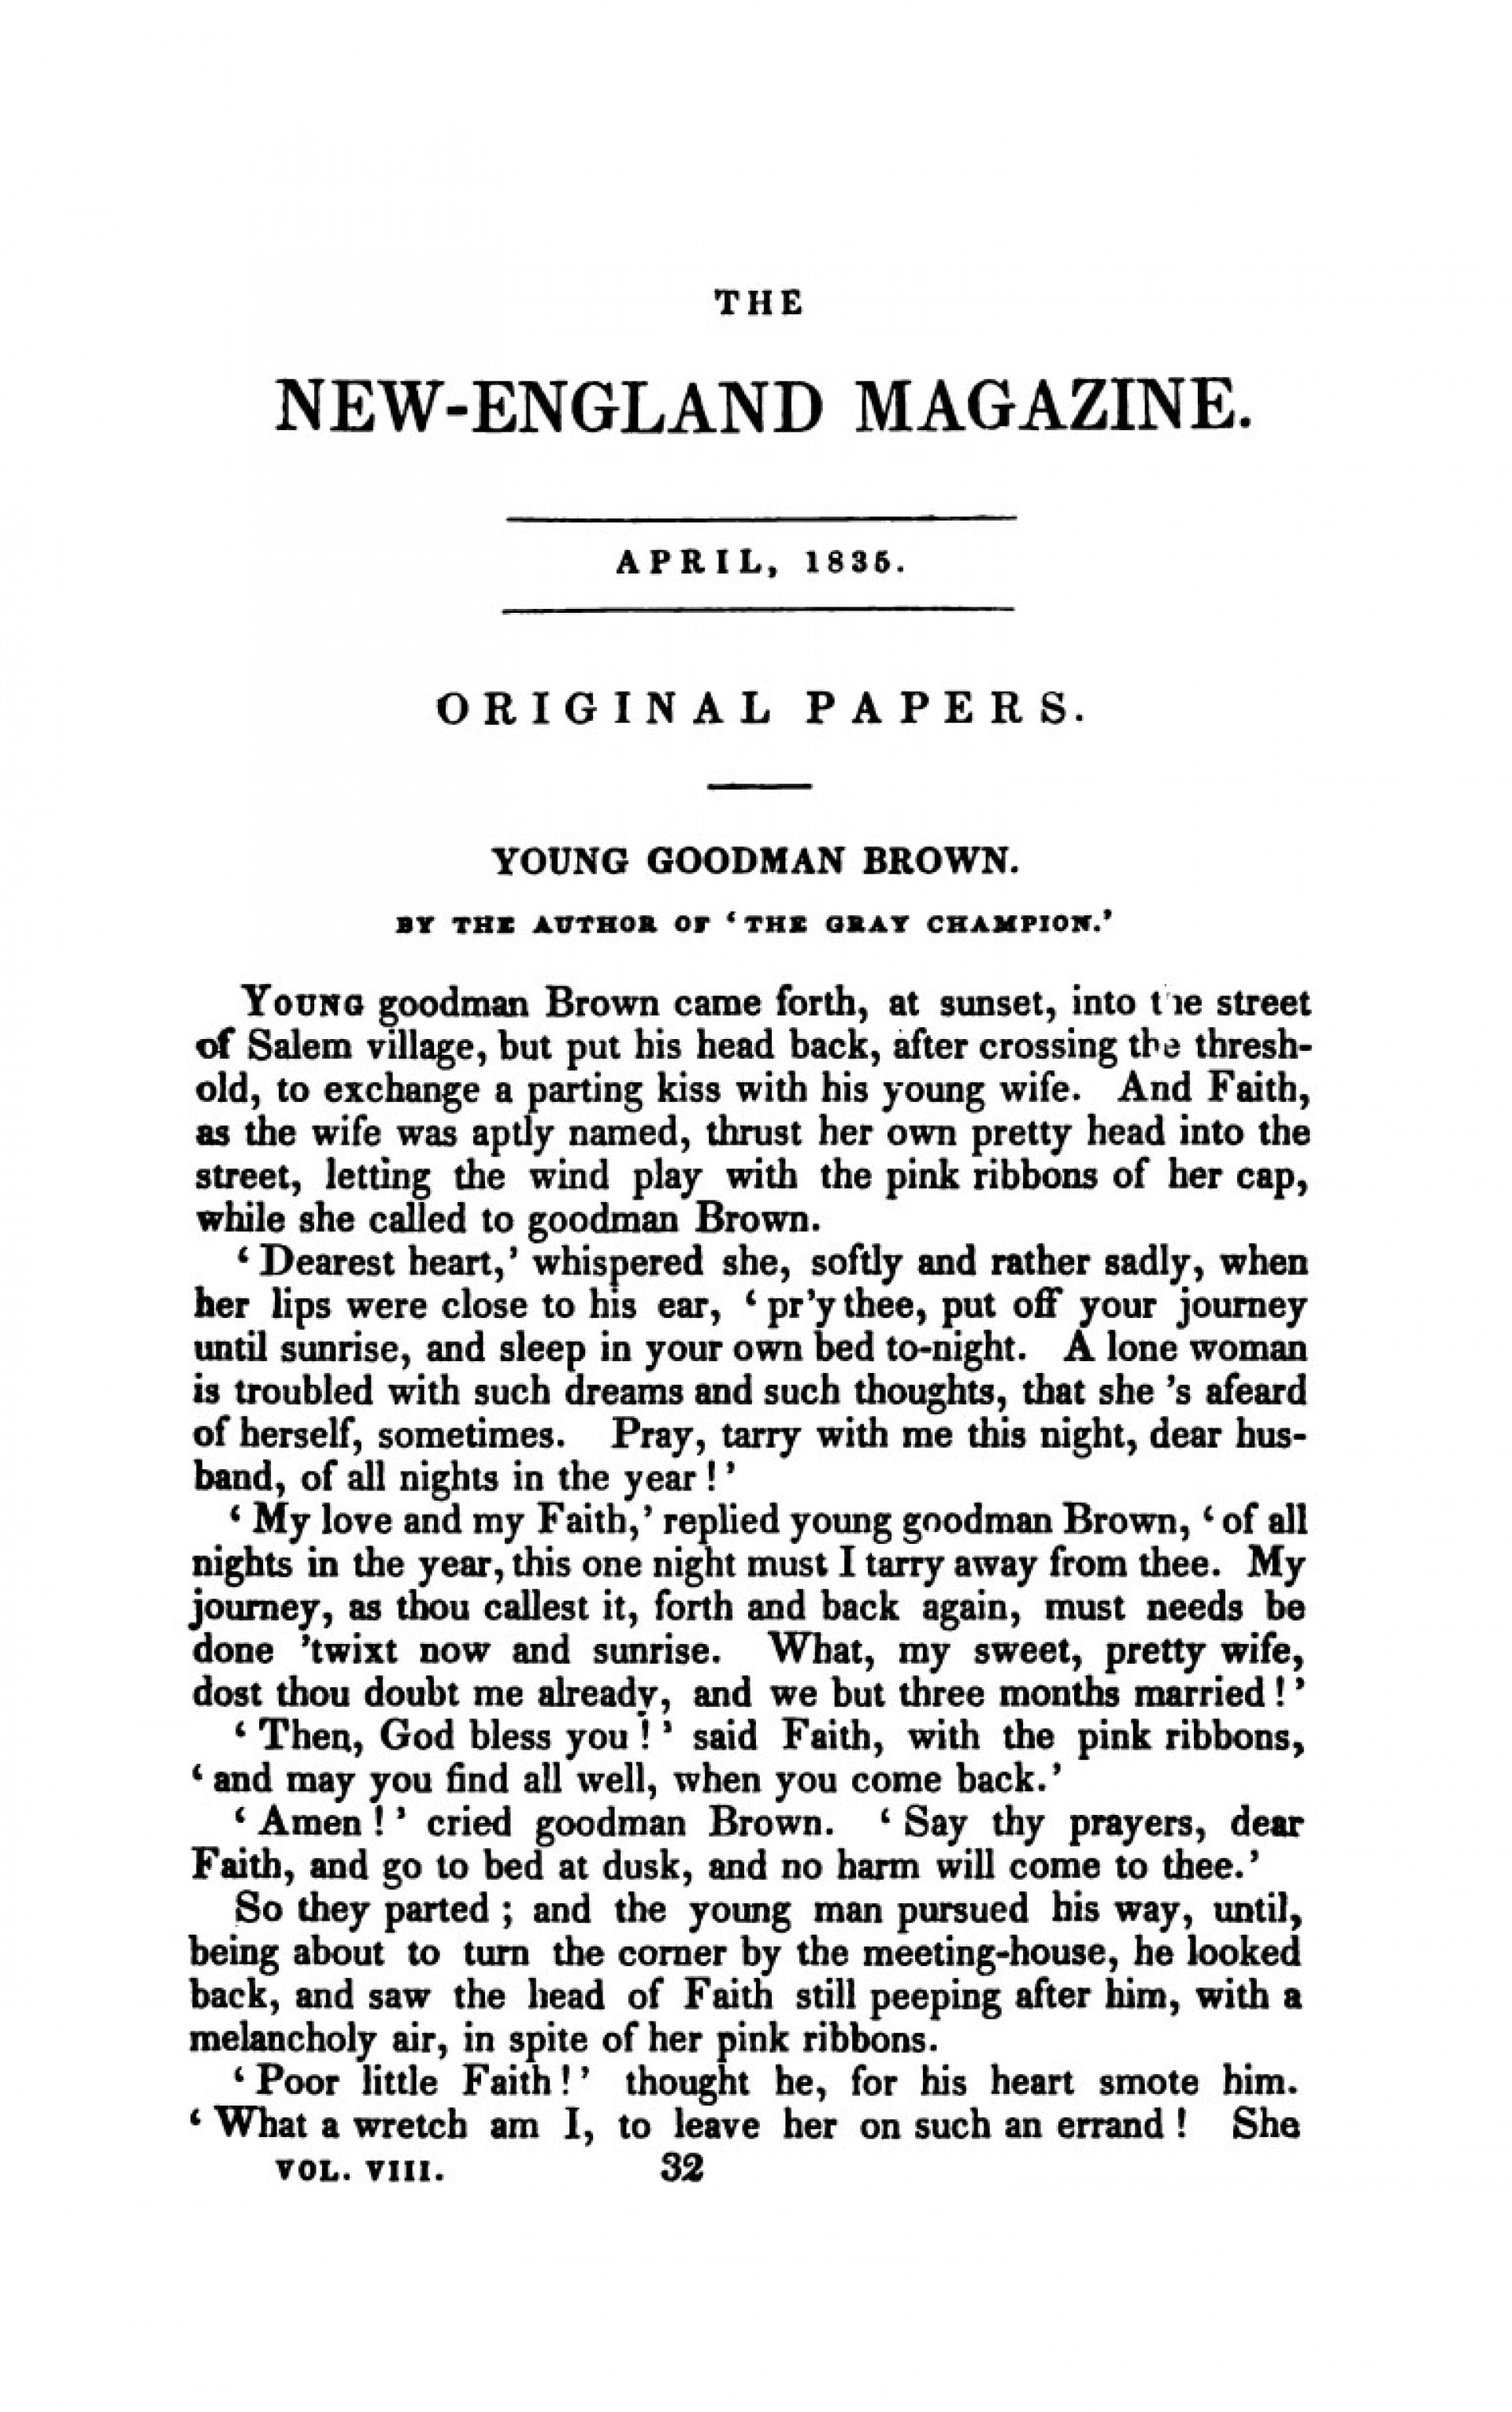 002 Young Goodman Brown Essay Example  The New England Magazine April 1835 Beautiful Writing Prompt Topics Theme1920